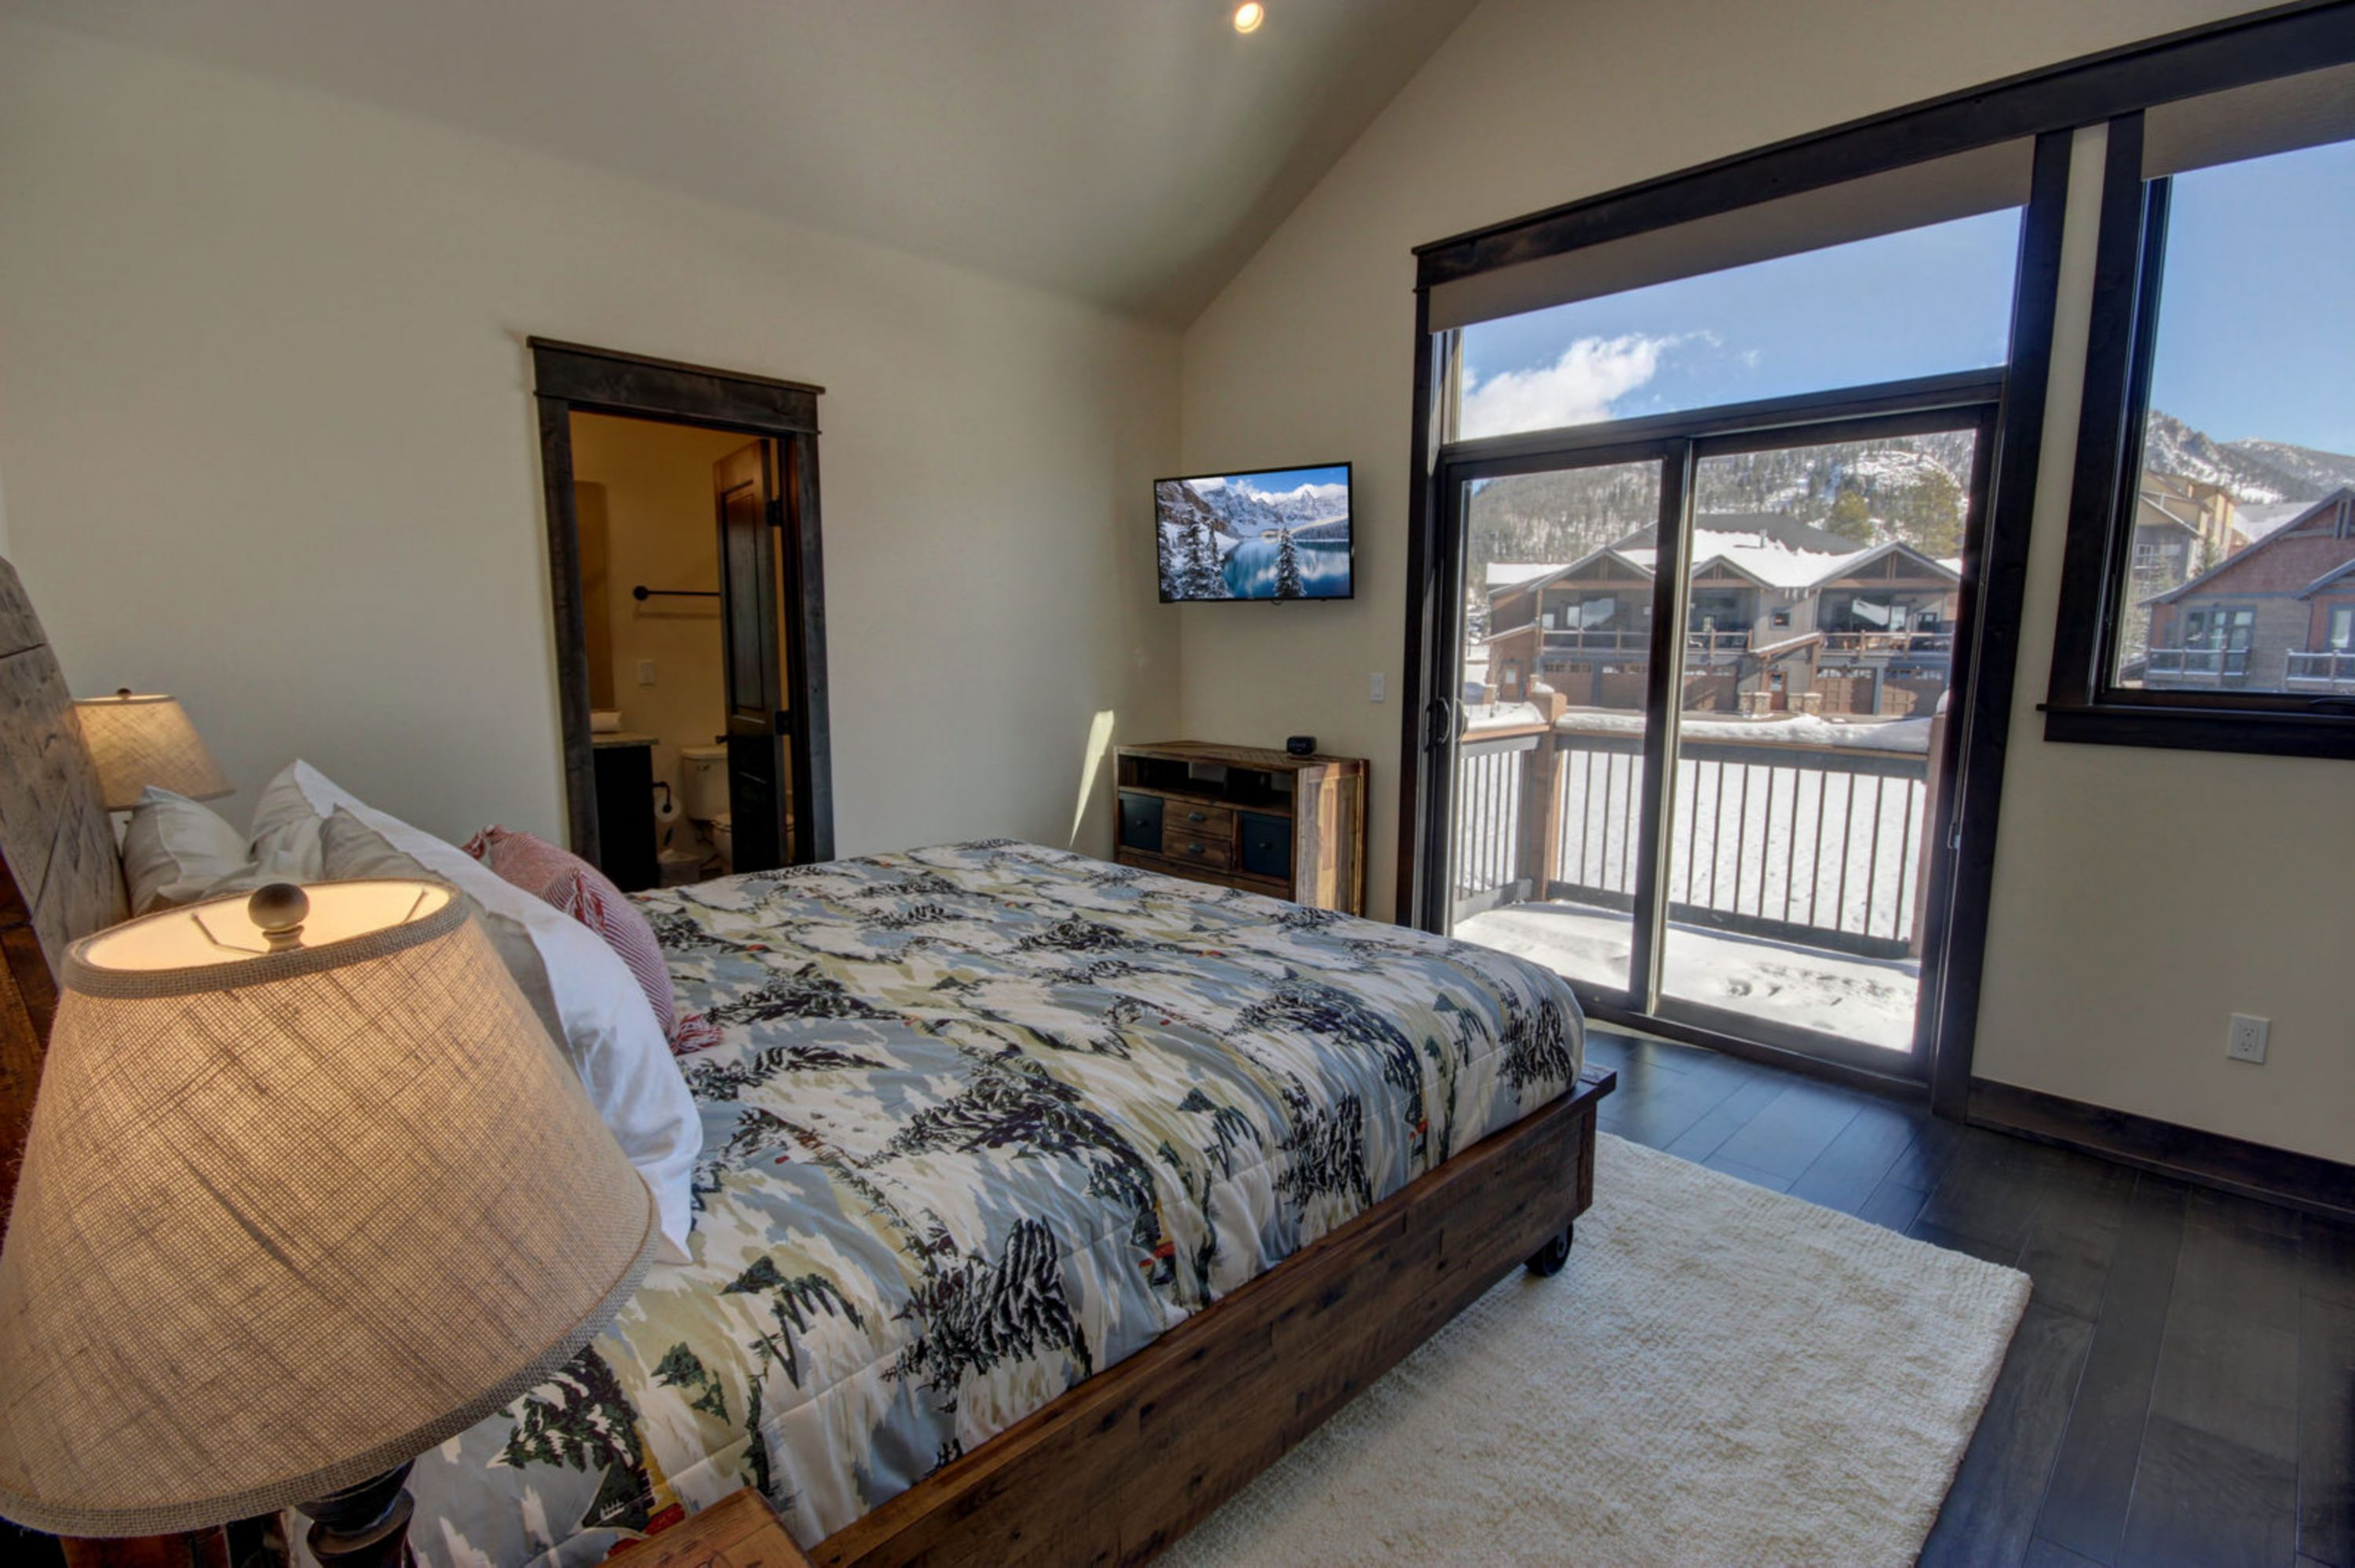 Bedroom with an amazing view of Keystone